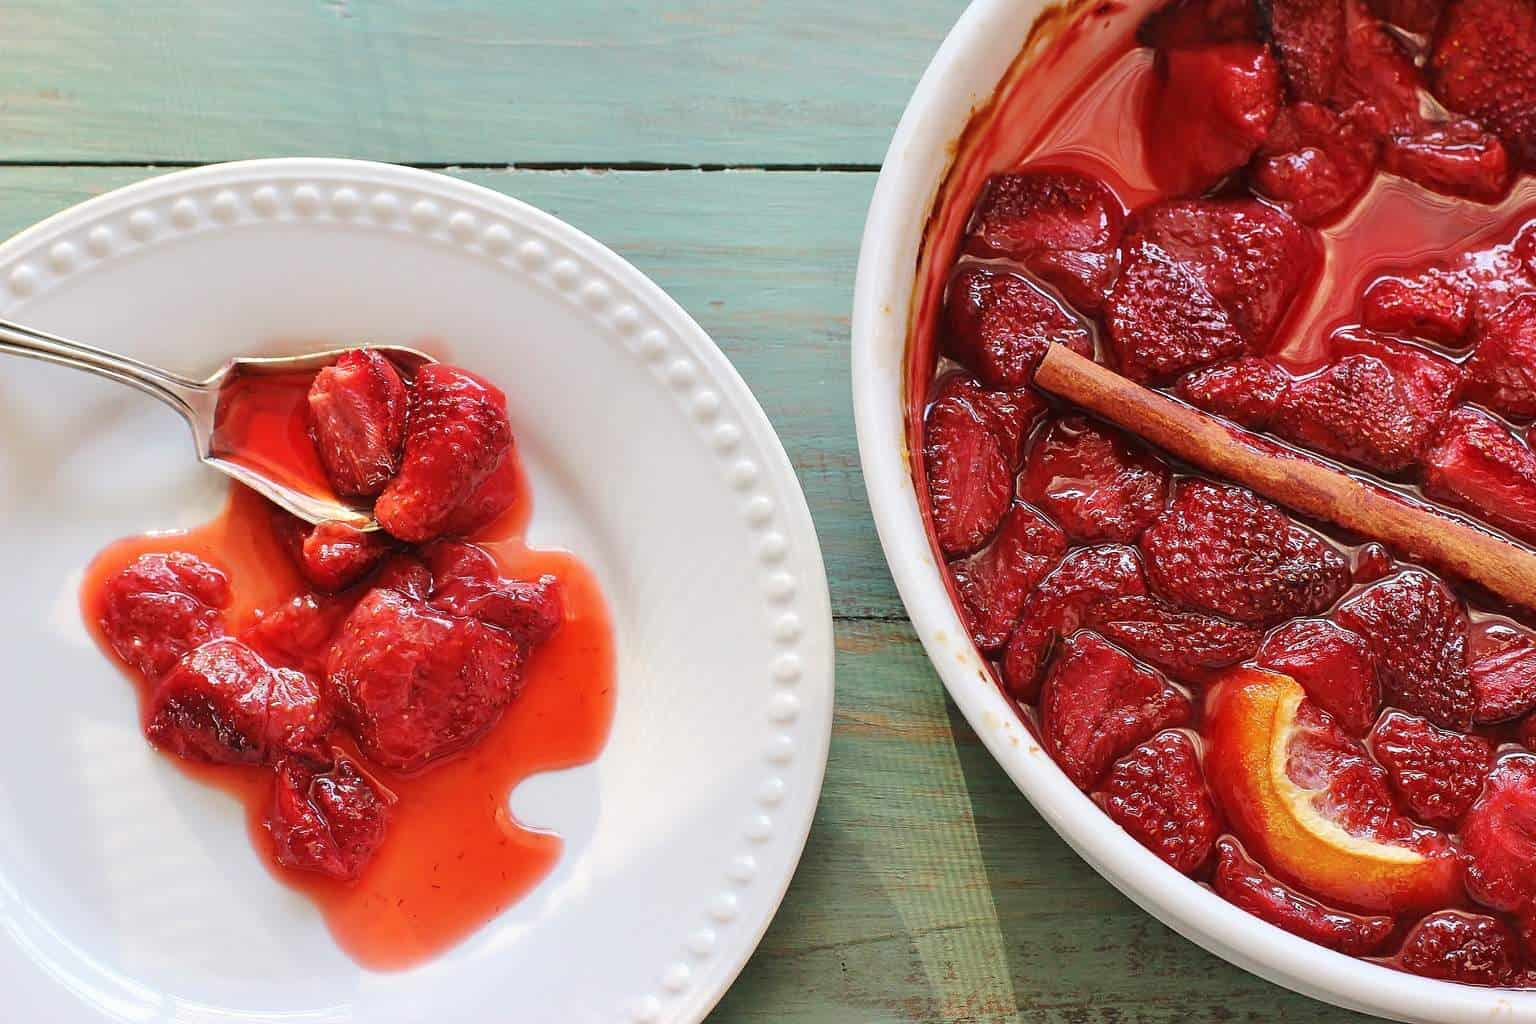 Roasted strawberries make a beautiful strawberry syrup.